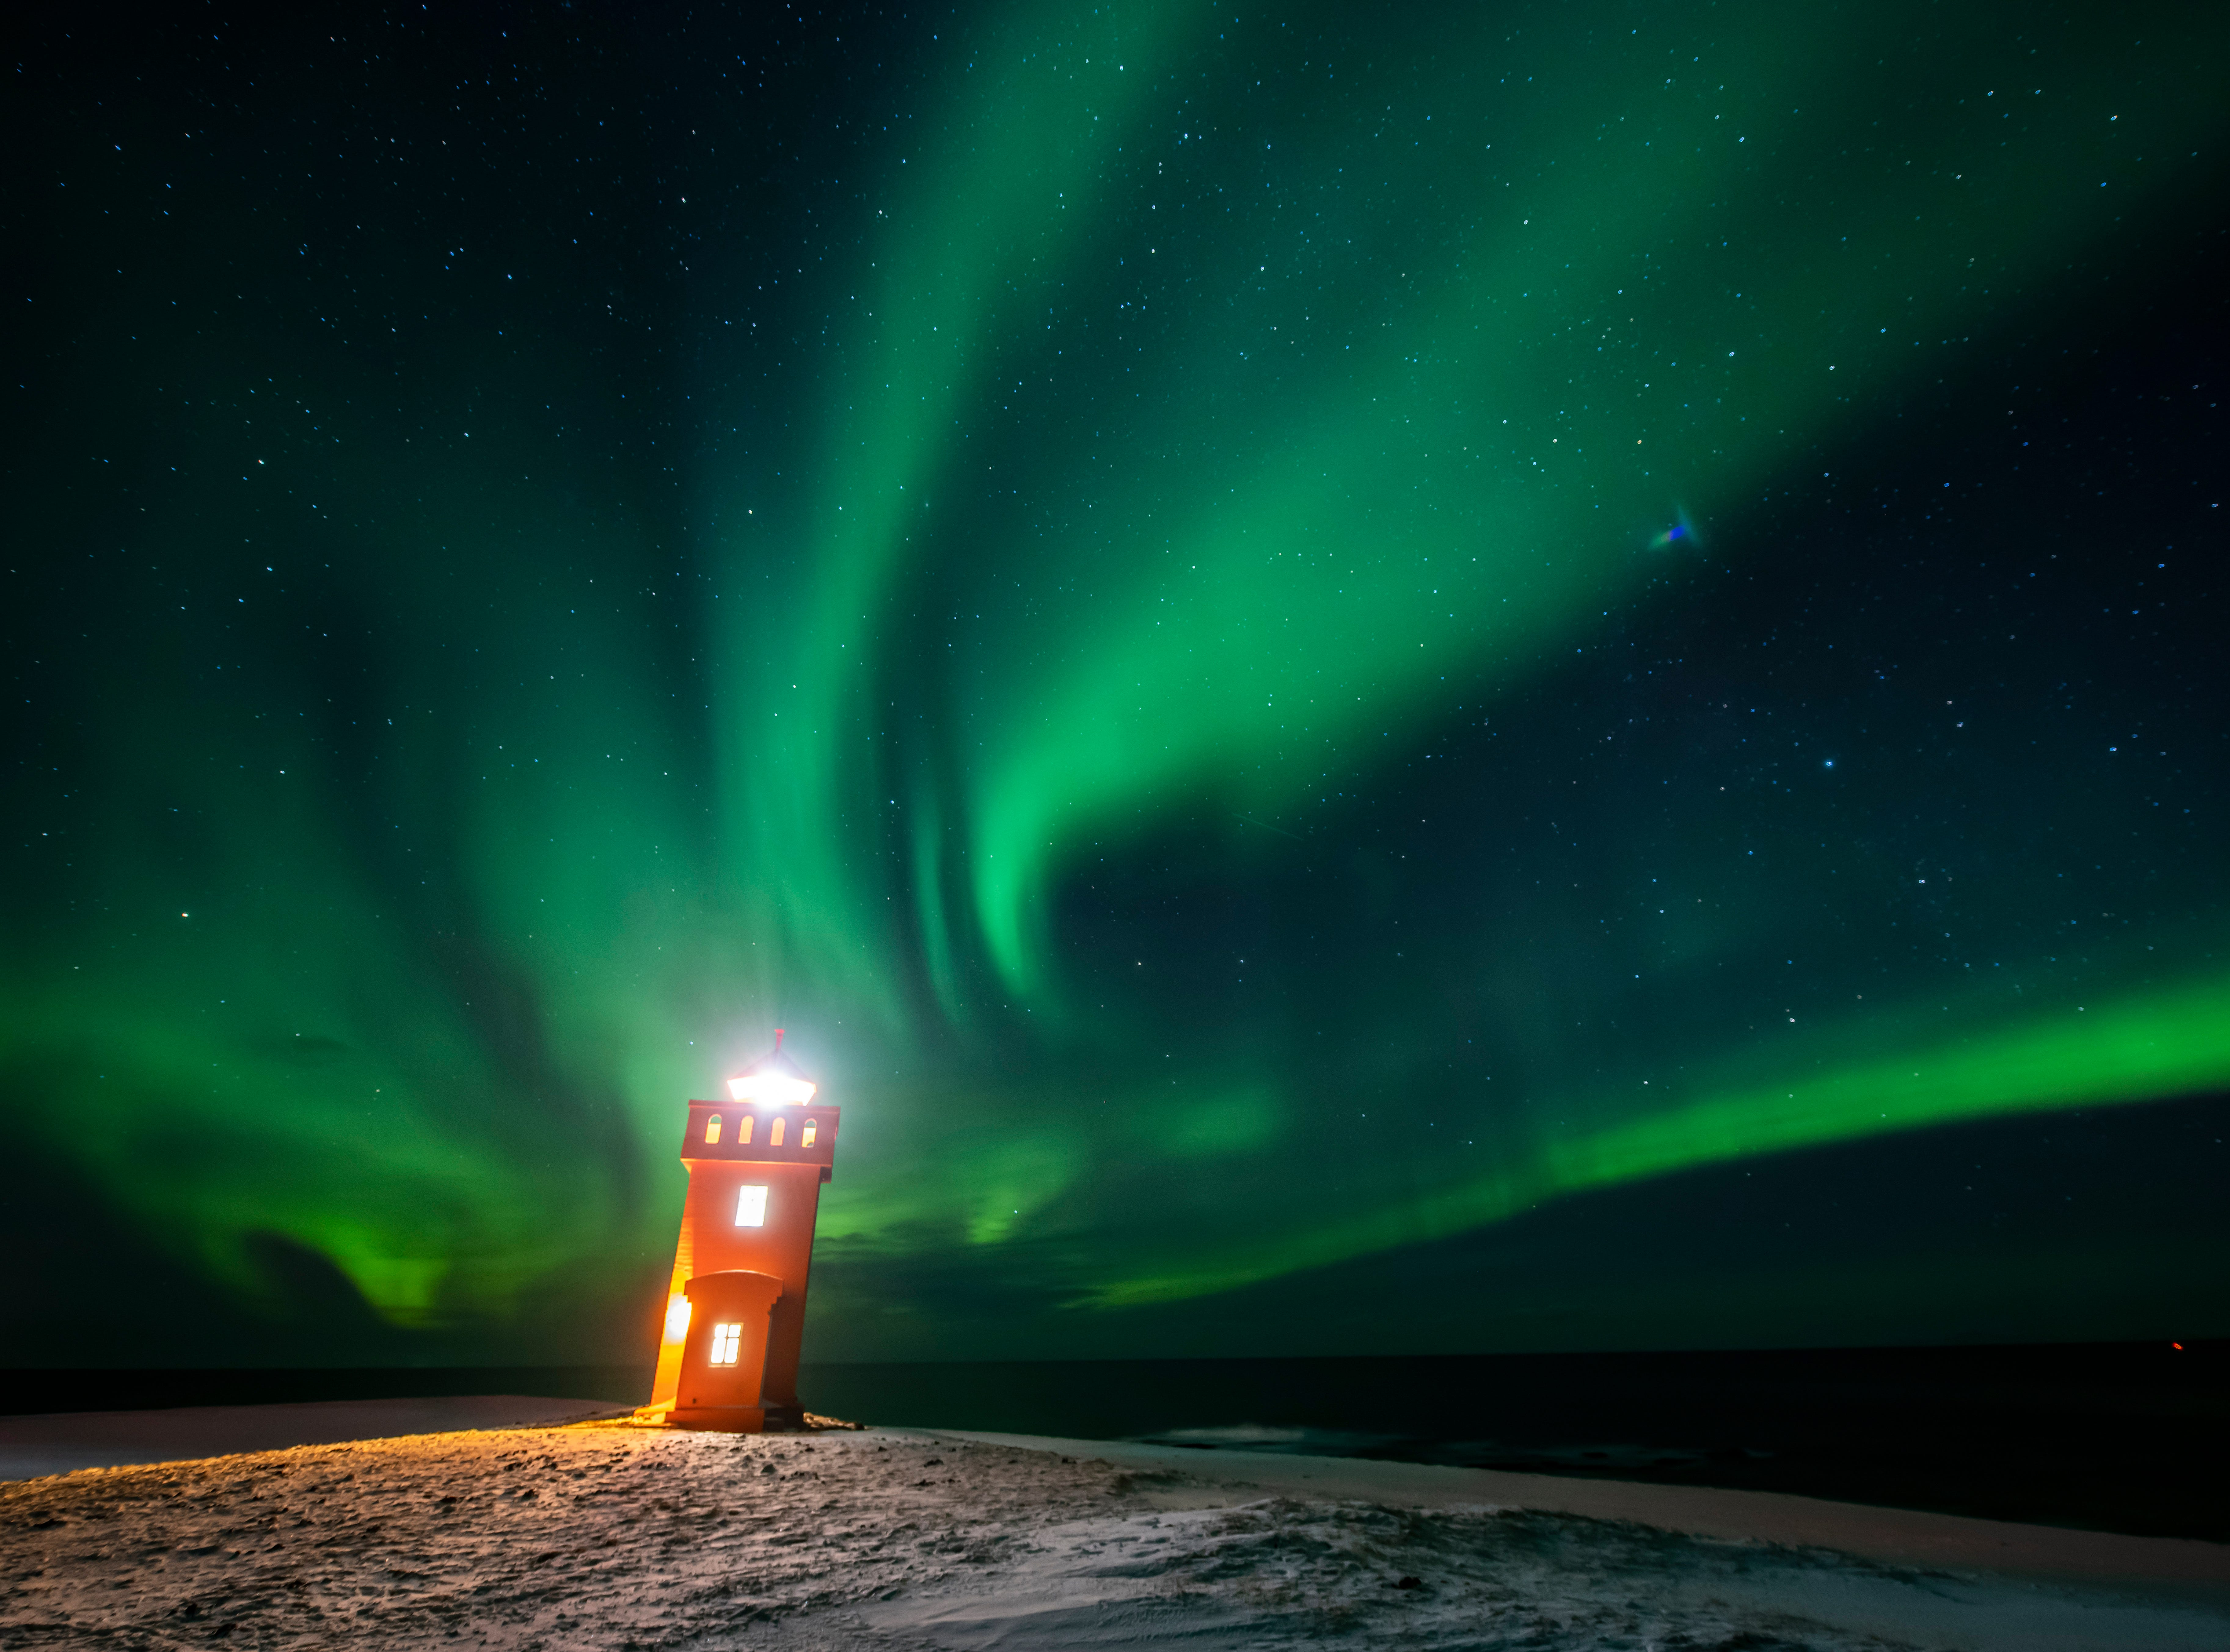 Aurora borealis or northern lights are visible in the sky above a lighthouse to the village of Grundarfjorour in Iceland. Aurorae are caused by the interaction between energetic charged particles from the sun and gas molecules in the upper atmosphere of the earth, about 100 kilometres up.